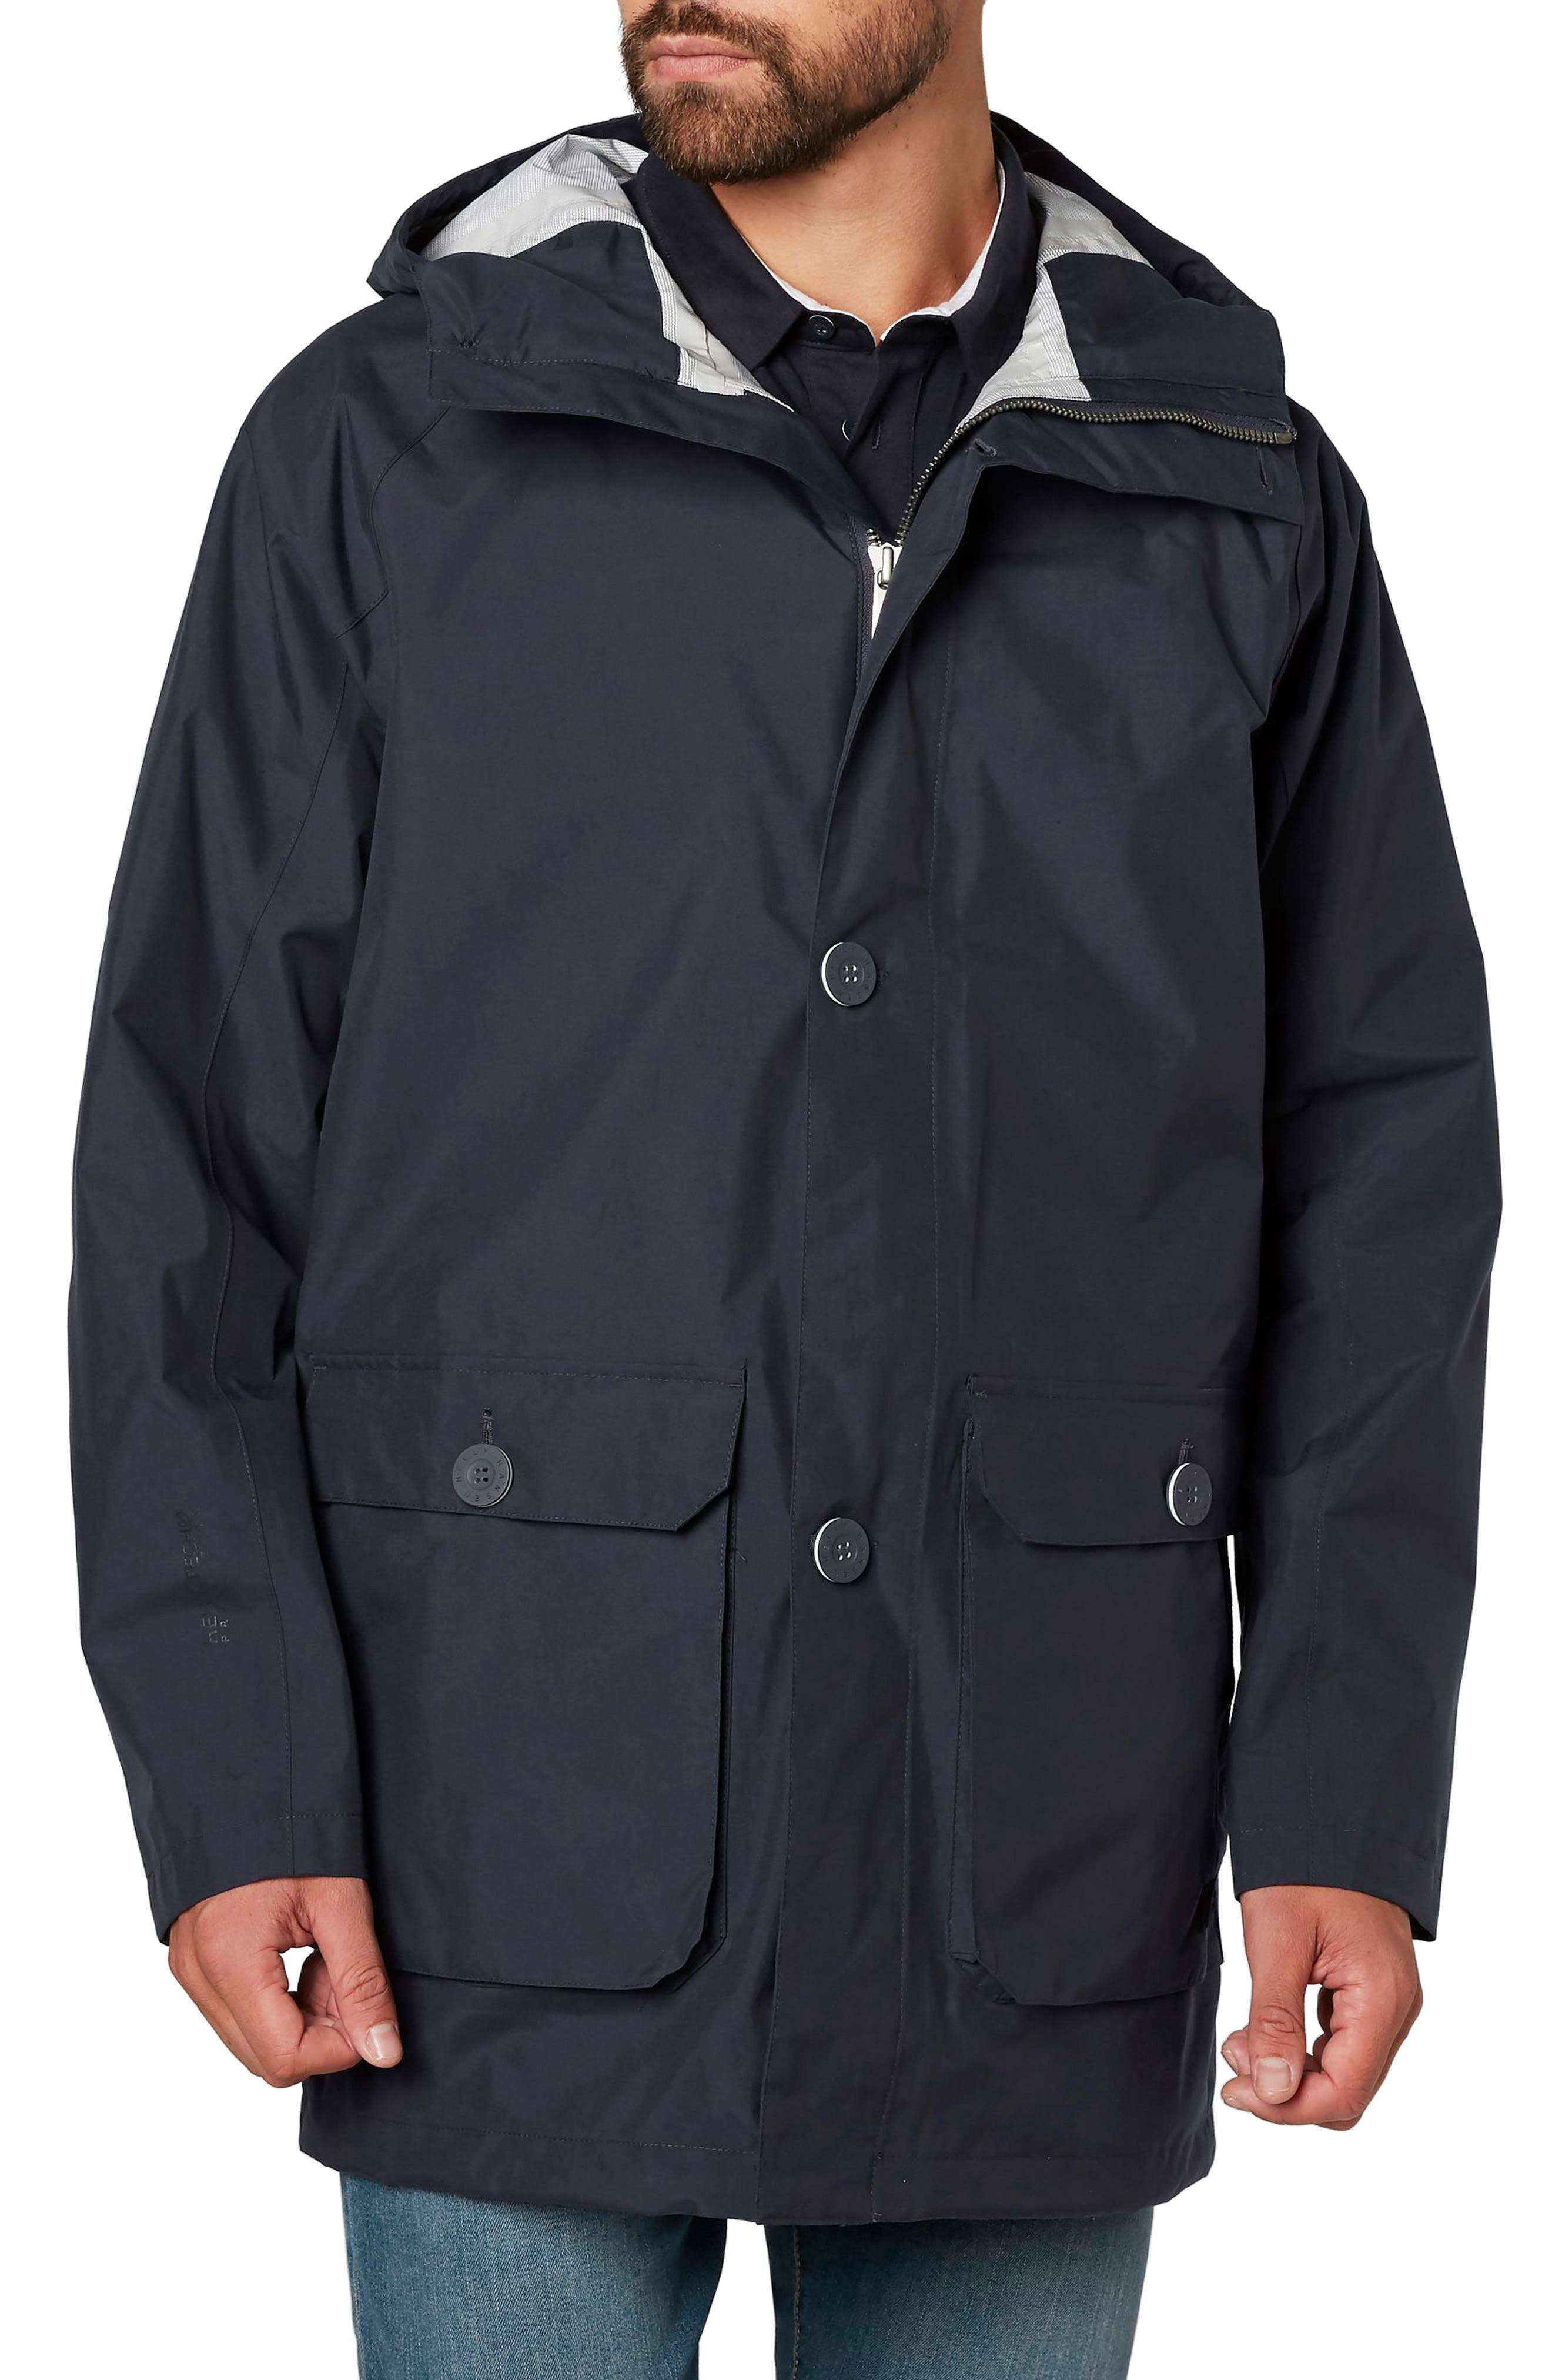 Elements Hooded Rain Jacket,                         Main,                         color,